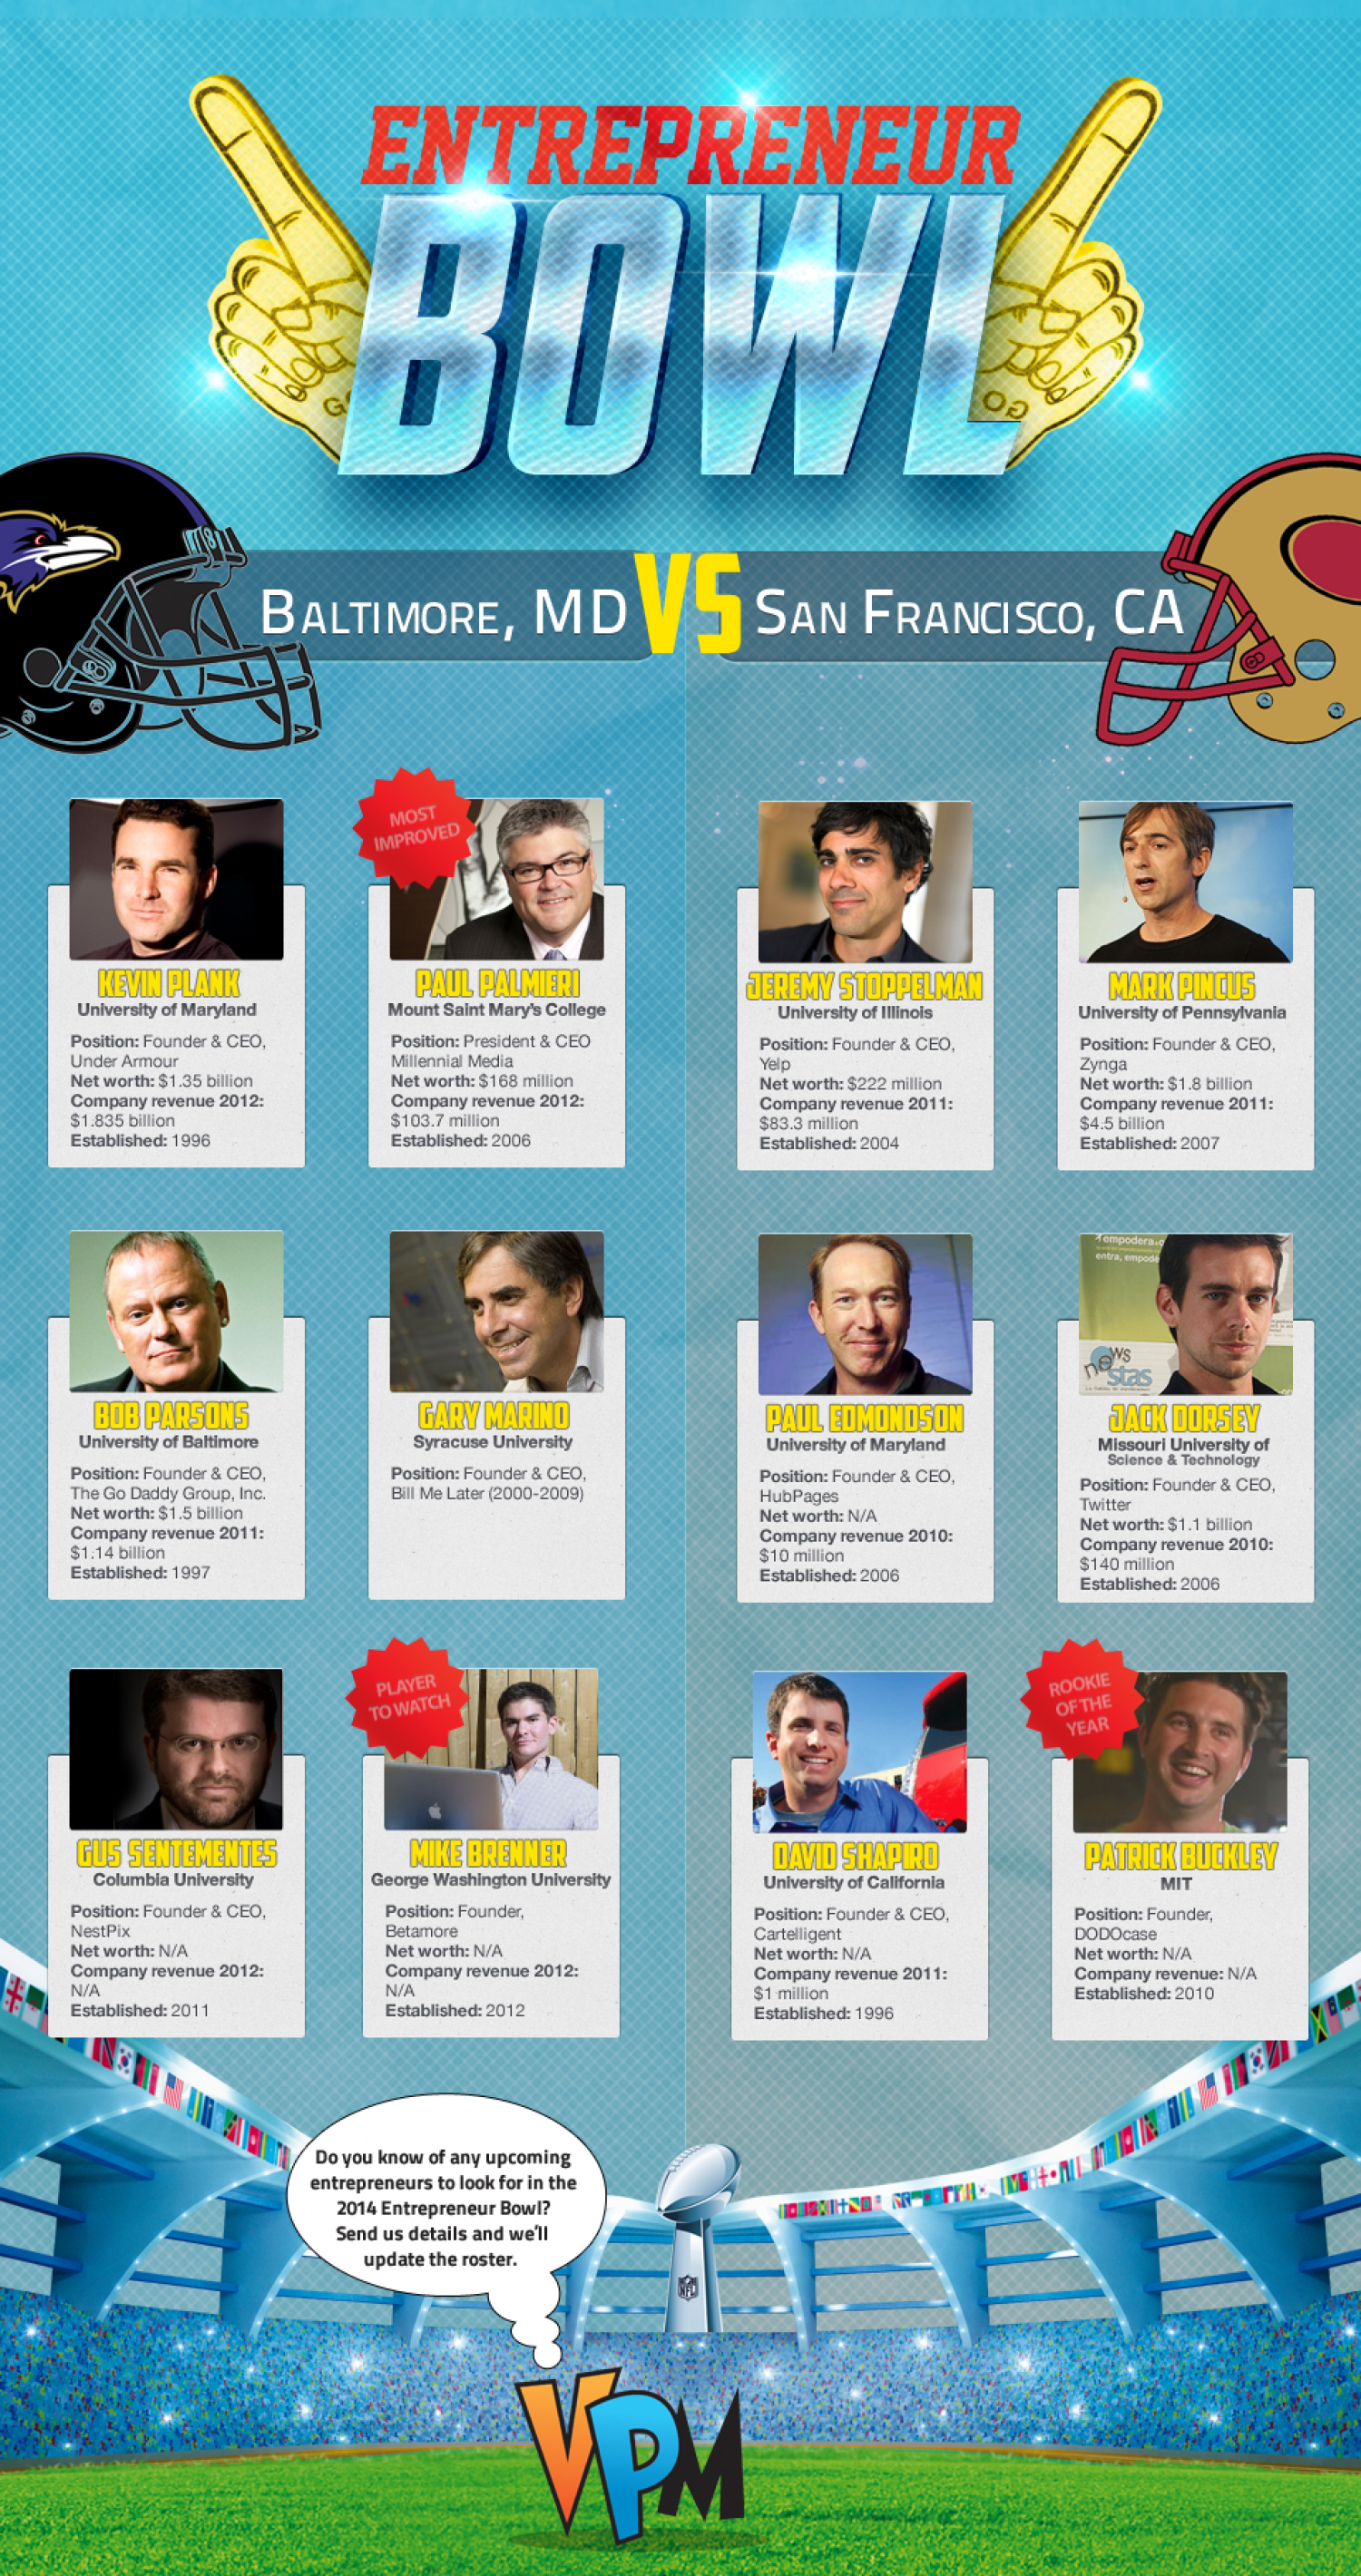 The Entrepreneur Bowl XLVII Infographic